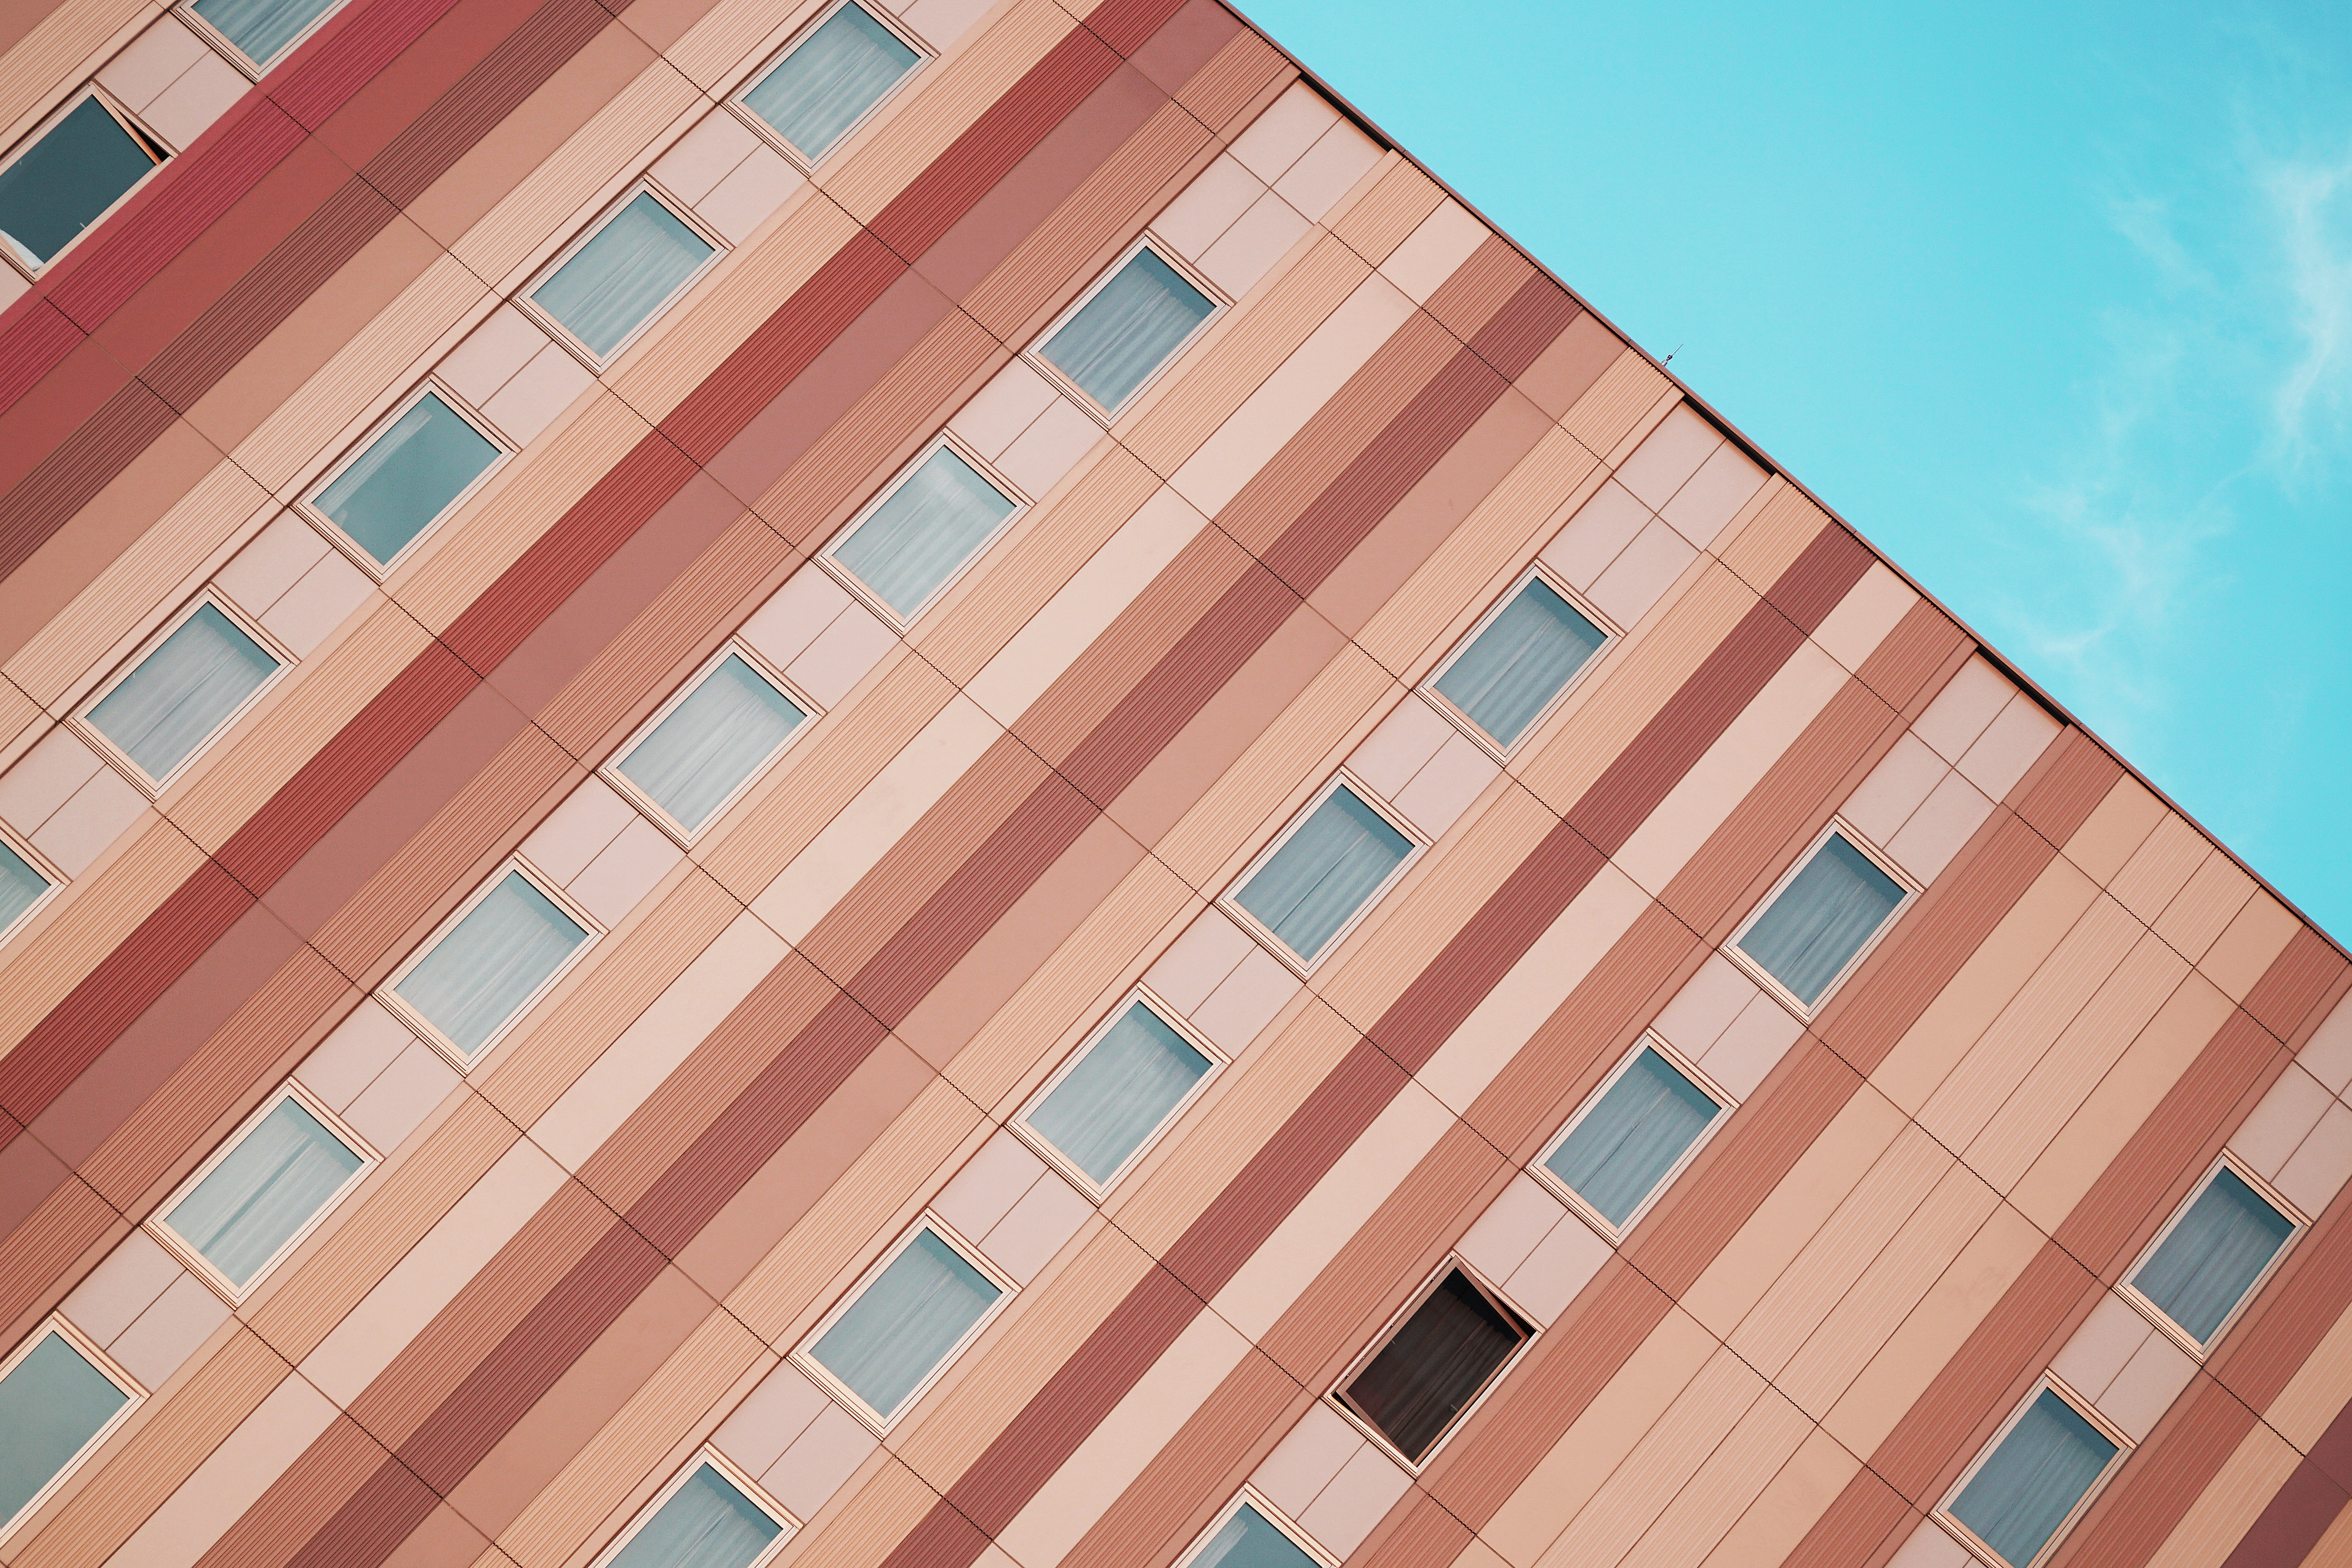 An angular shot of a residential building facade painted with pastel-colored stripes